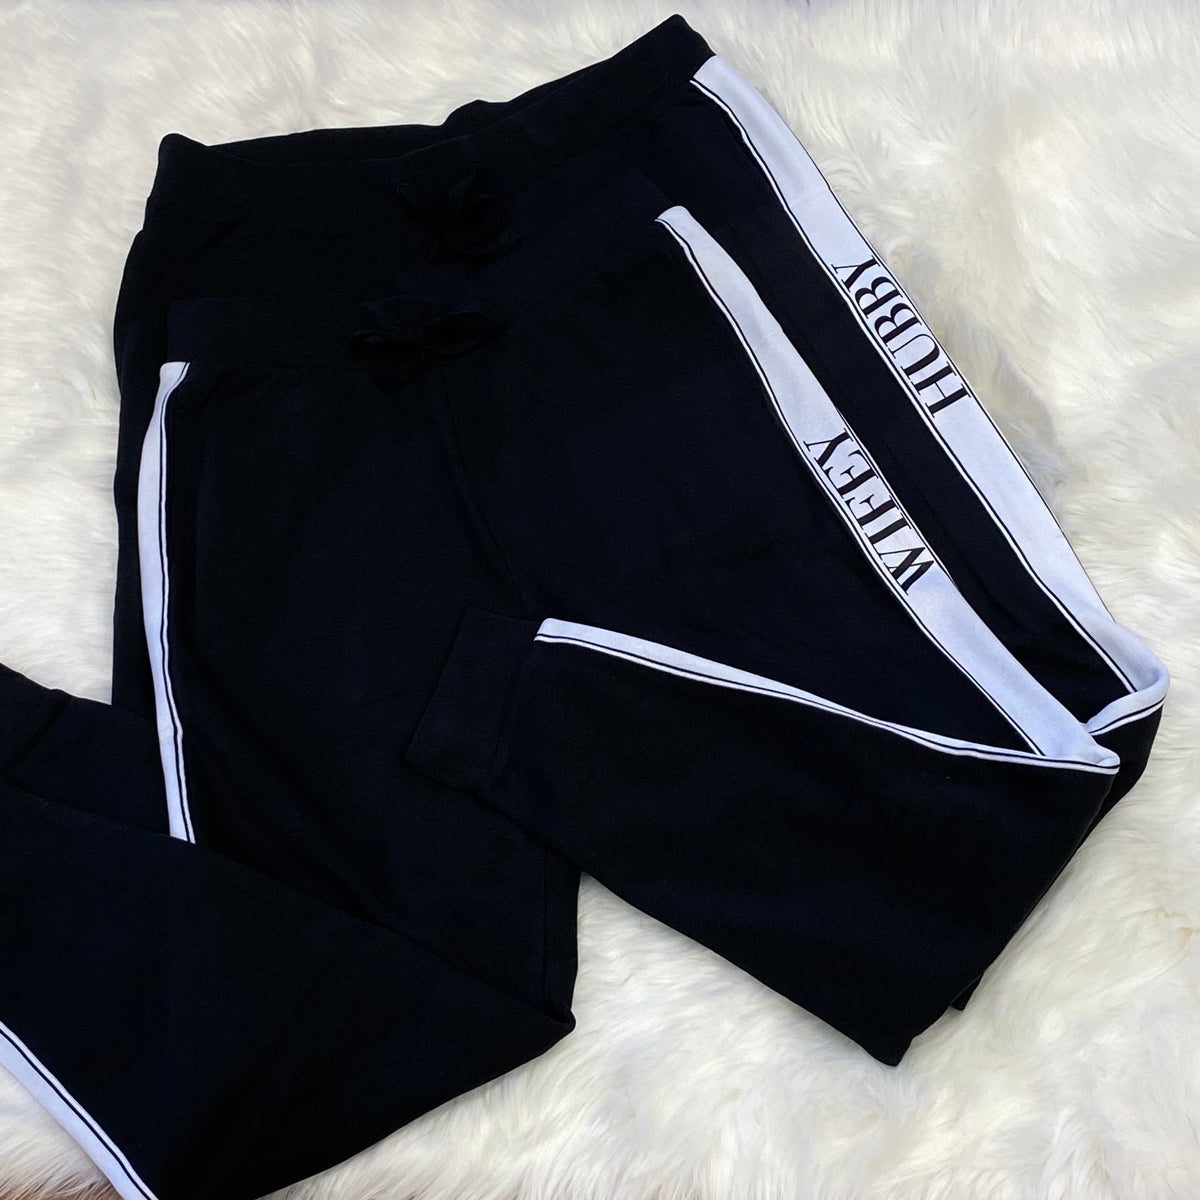 Hubby Wifey matching jogging bottoms The Bespoke Wedding Gift Company